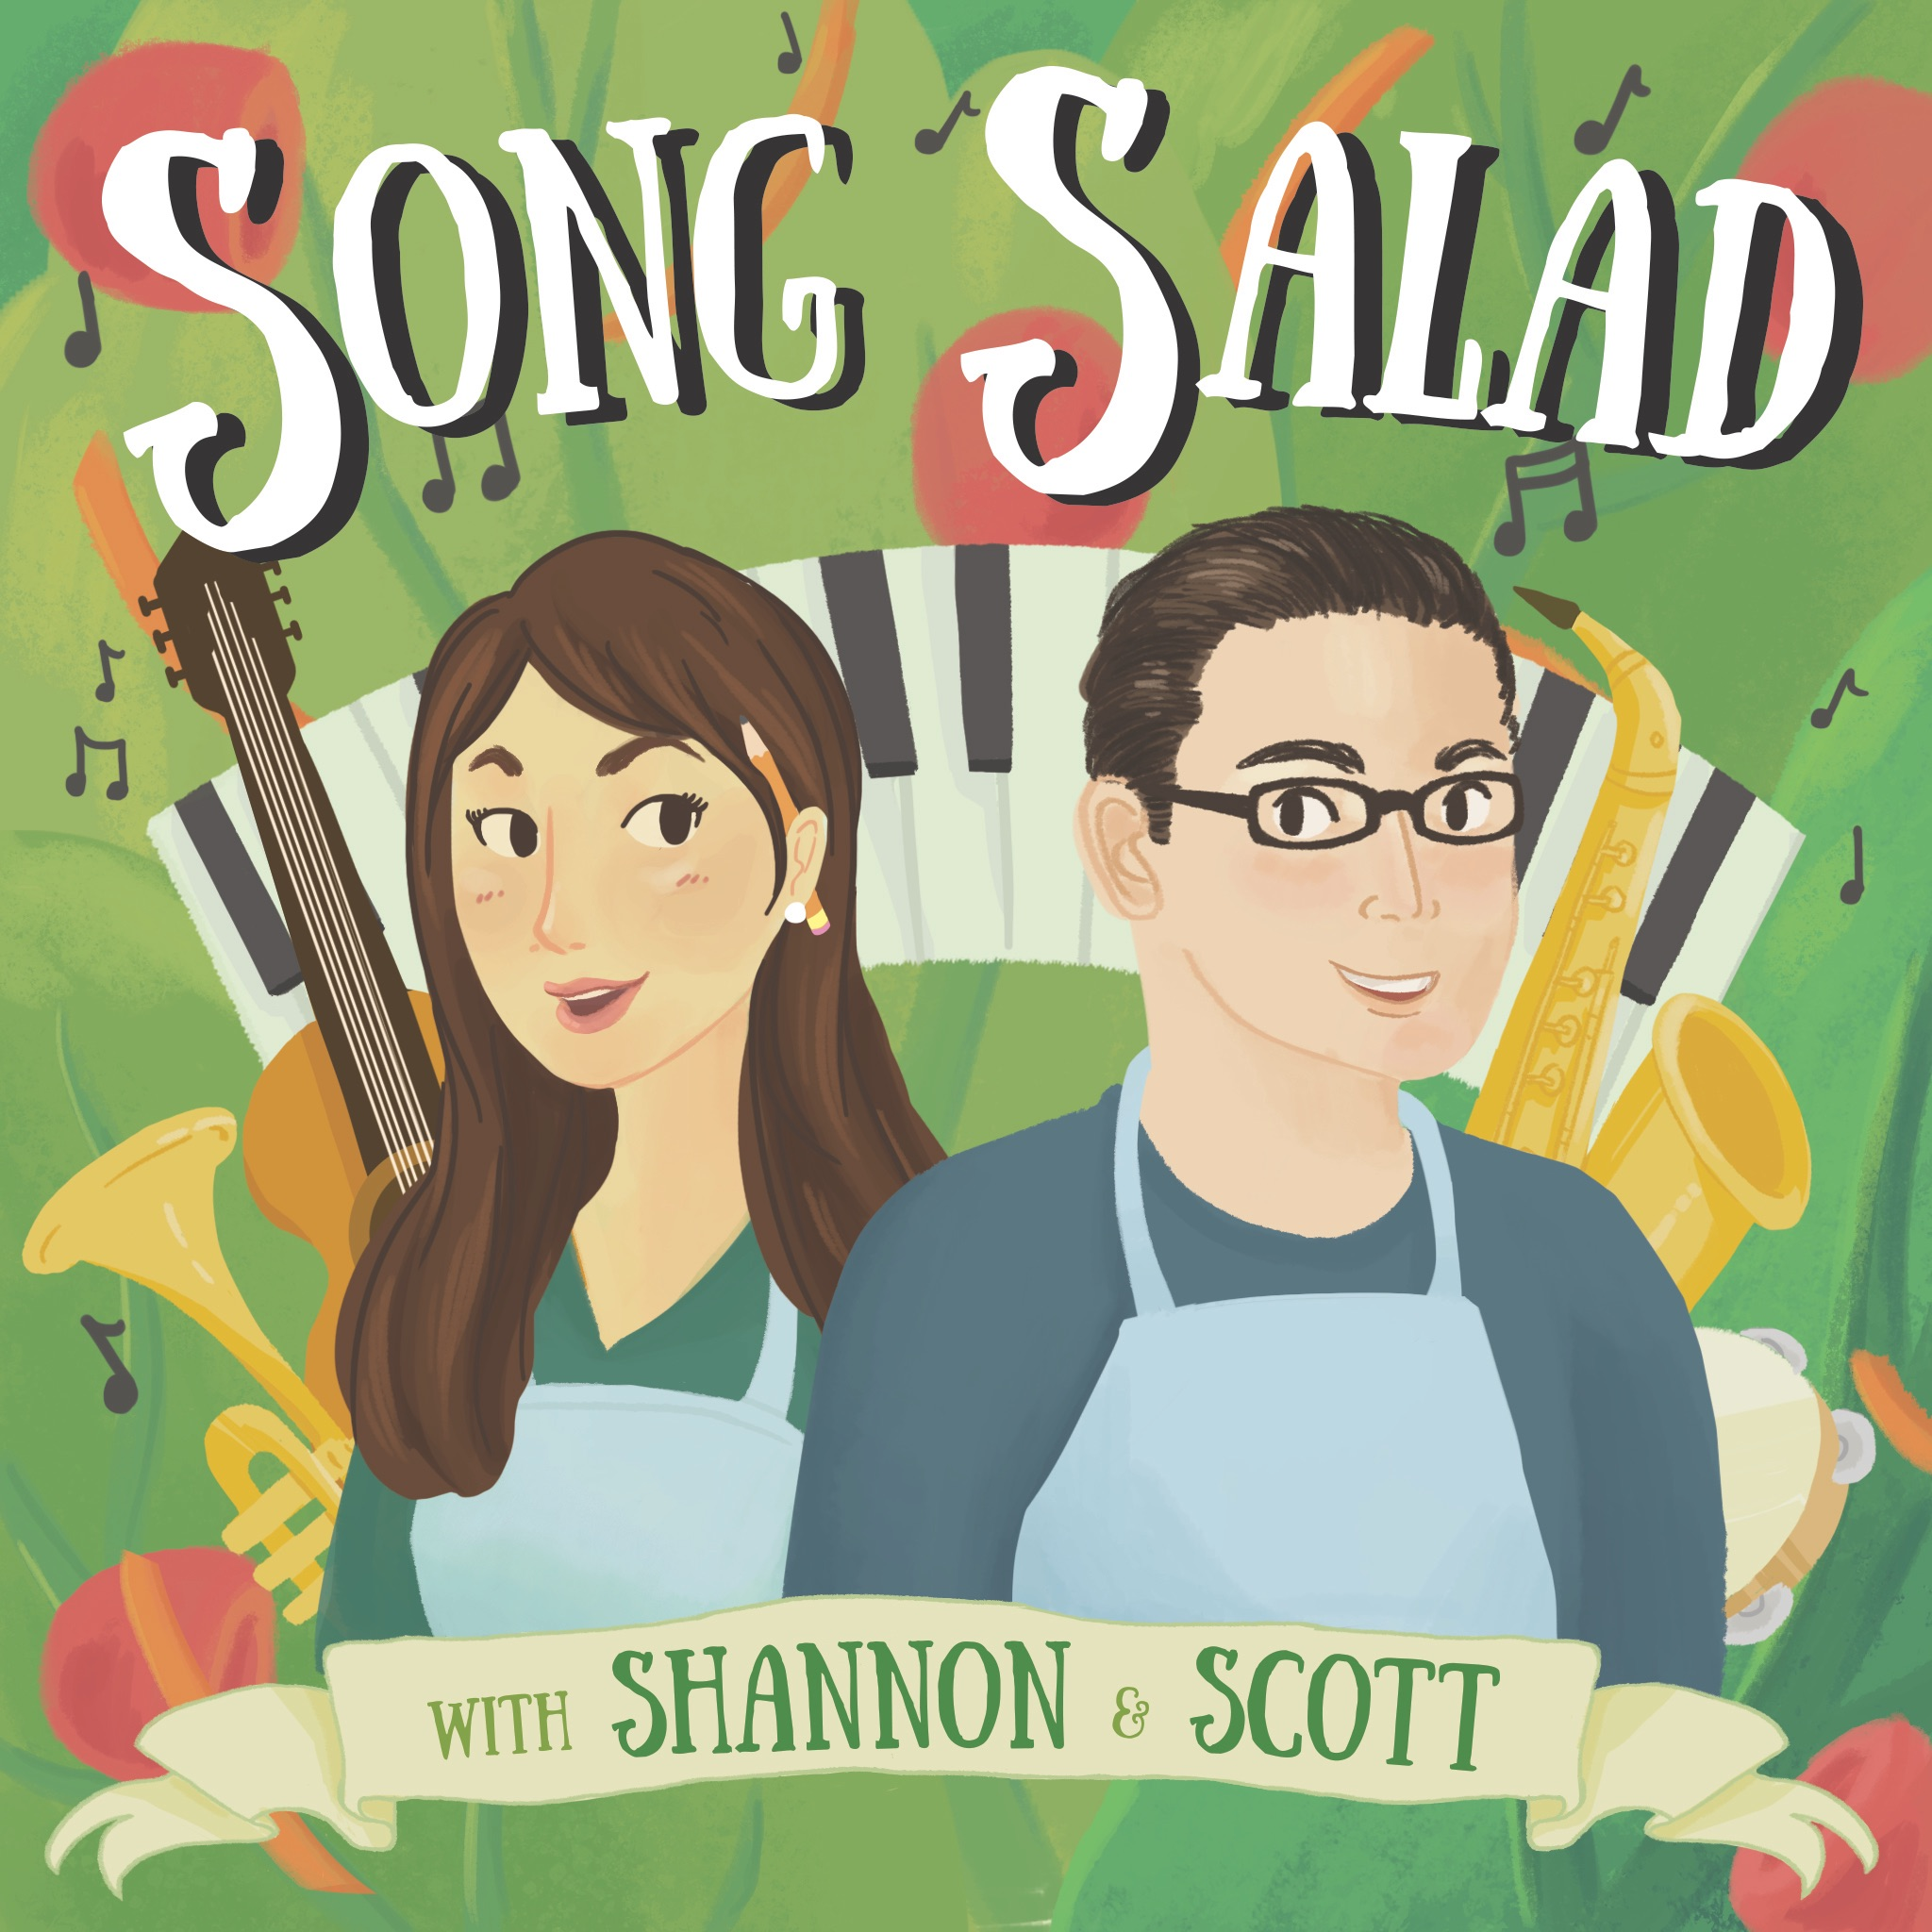 Song Salad podcast show image